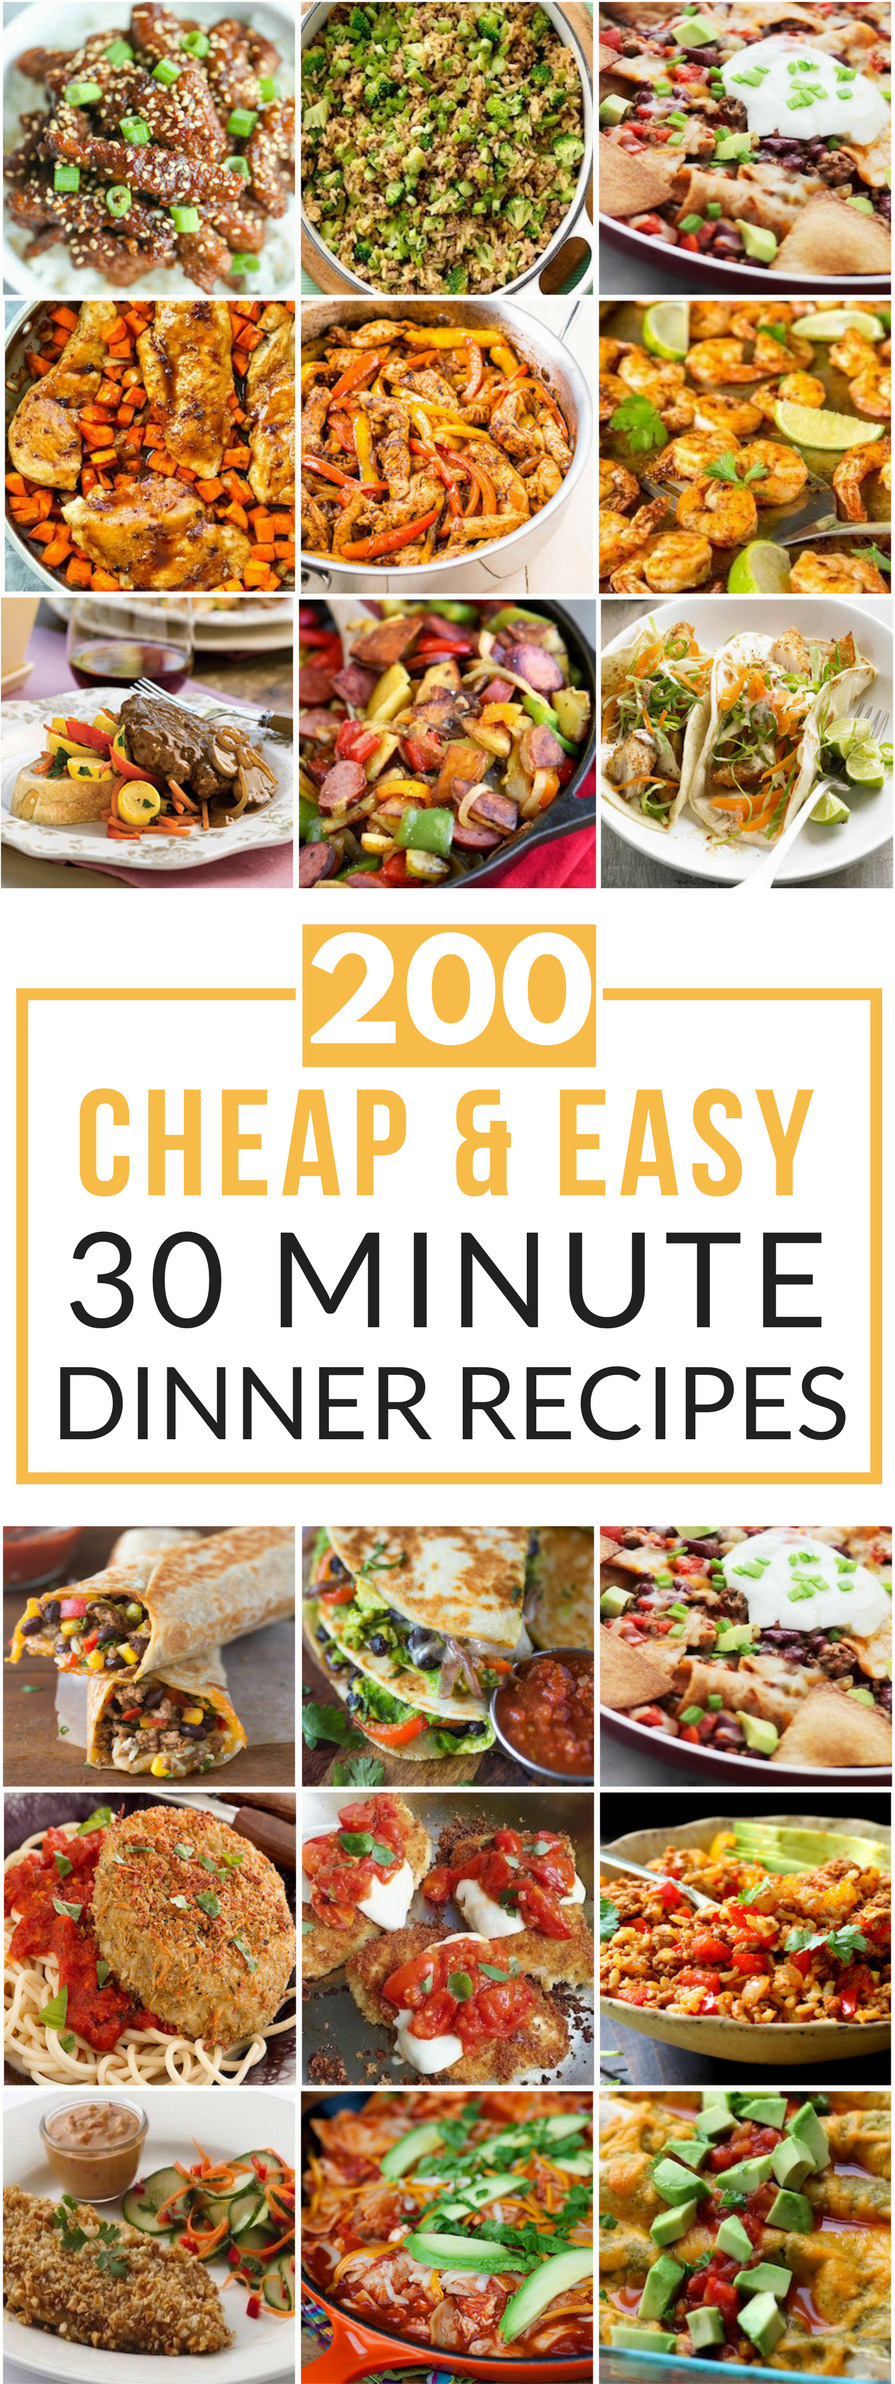 Cheap healthy food recipes - 200 Cheap Easy 30 Minute Meals